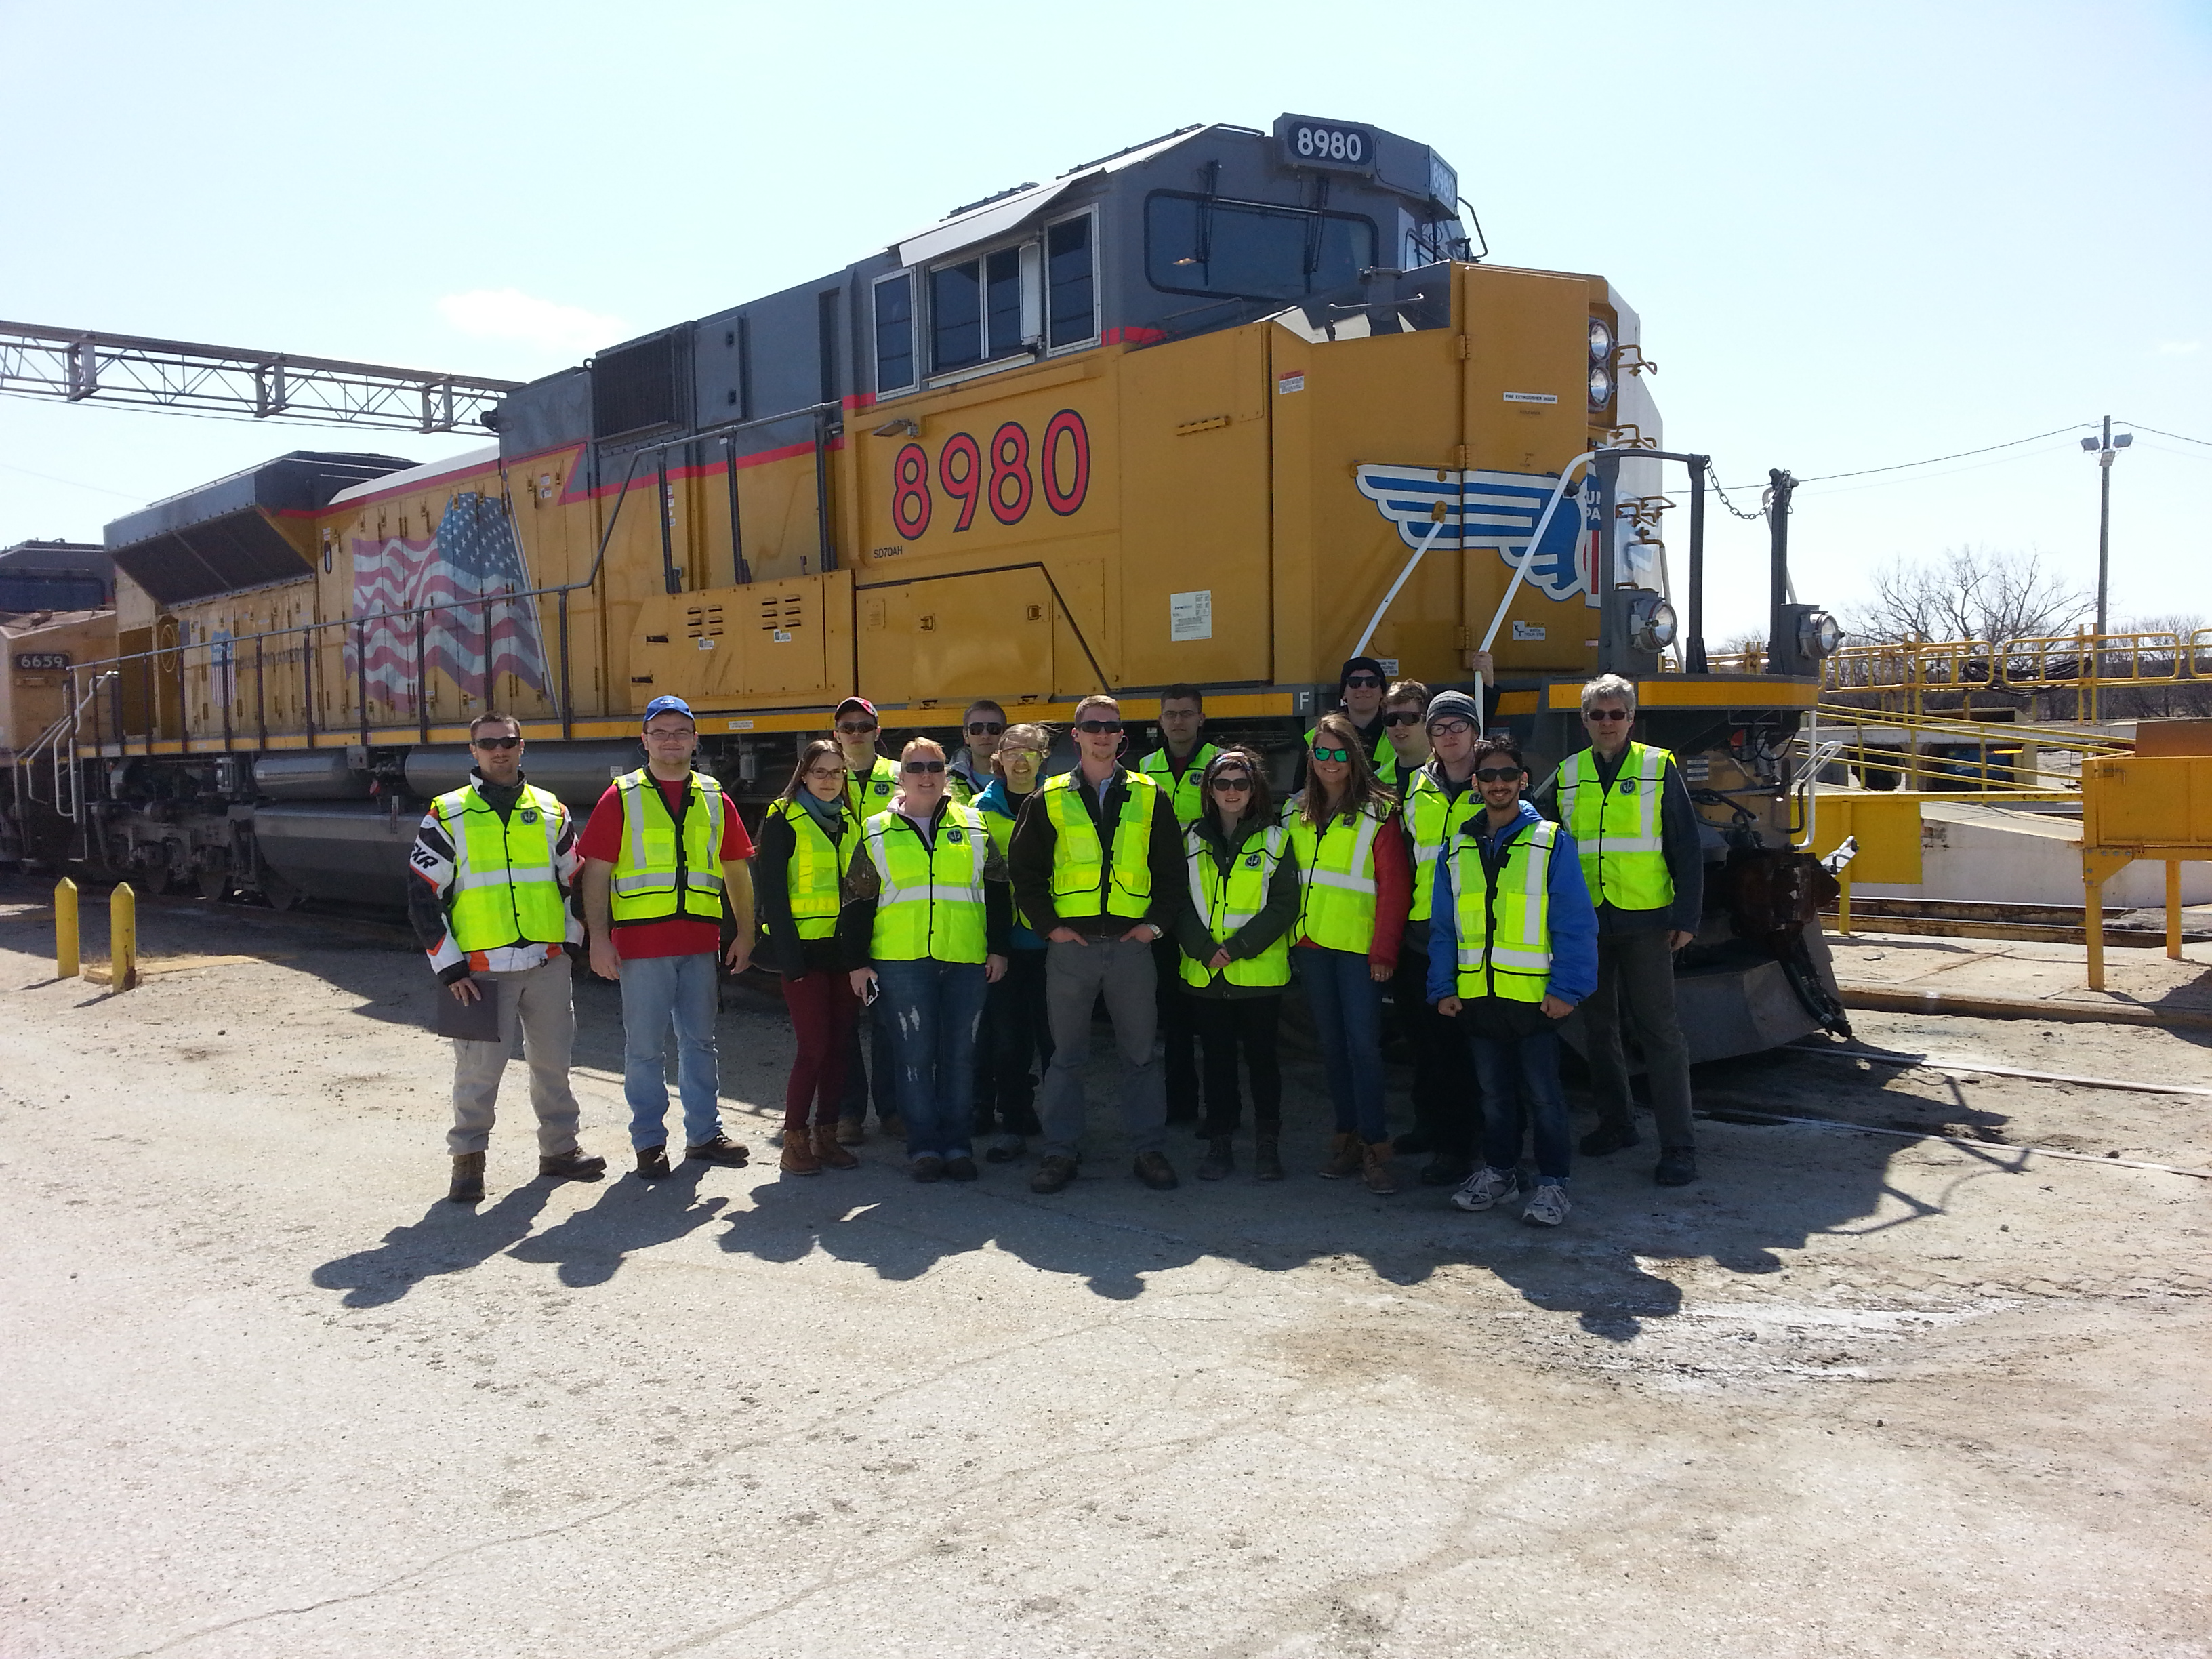 Railroad Engineering and Activities Club | Rail